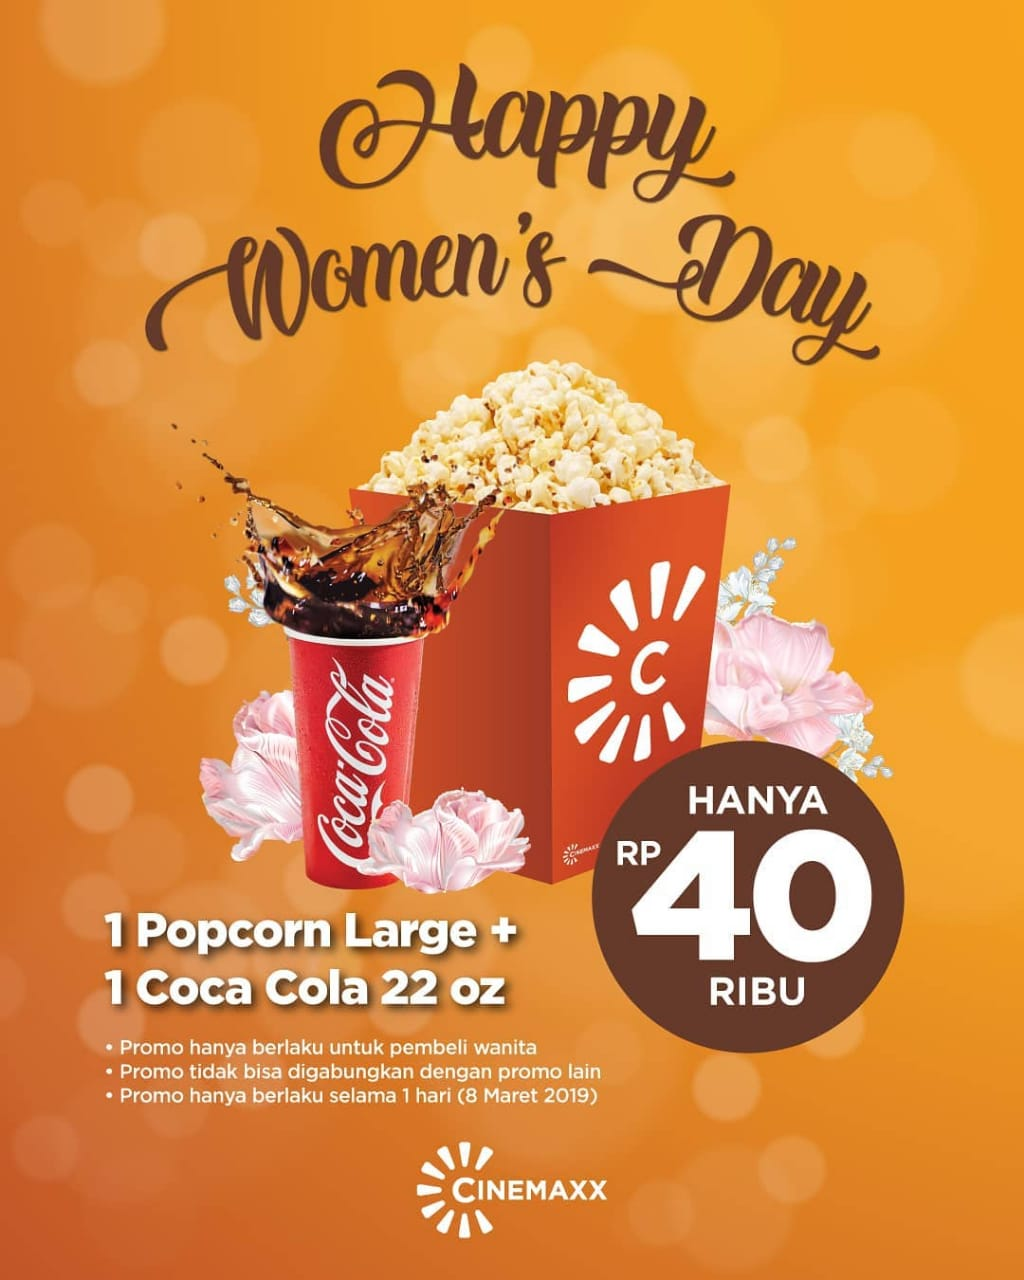 Cinemaxx Theater Promo Spesial Women 39 S Day Beli Paket - Cinemaxx Coupons